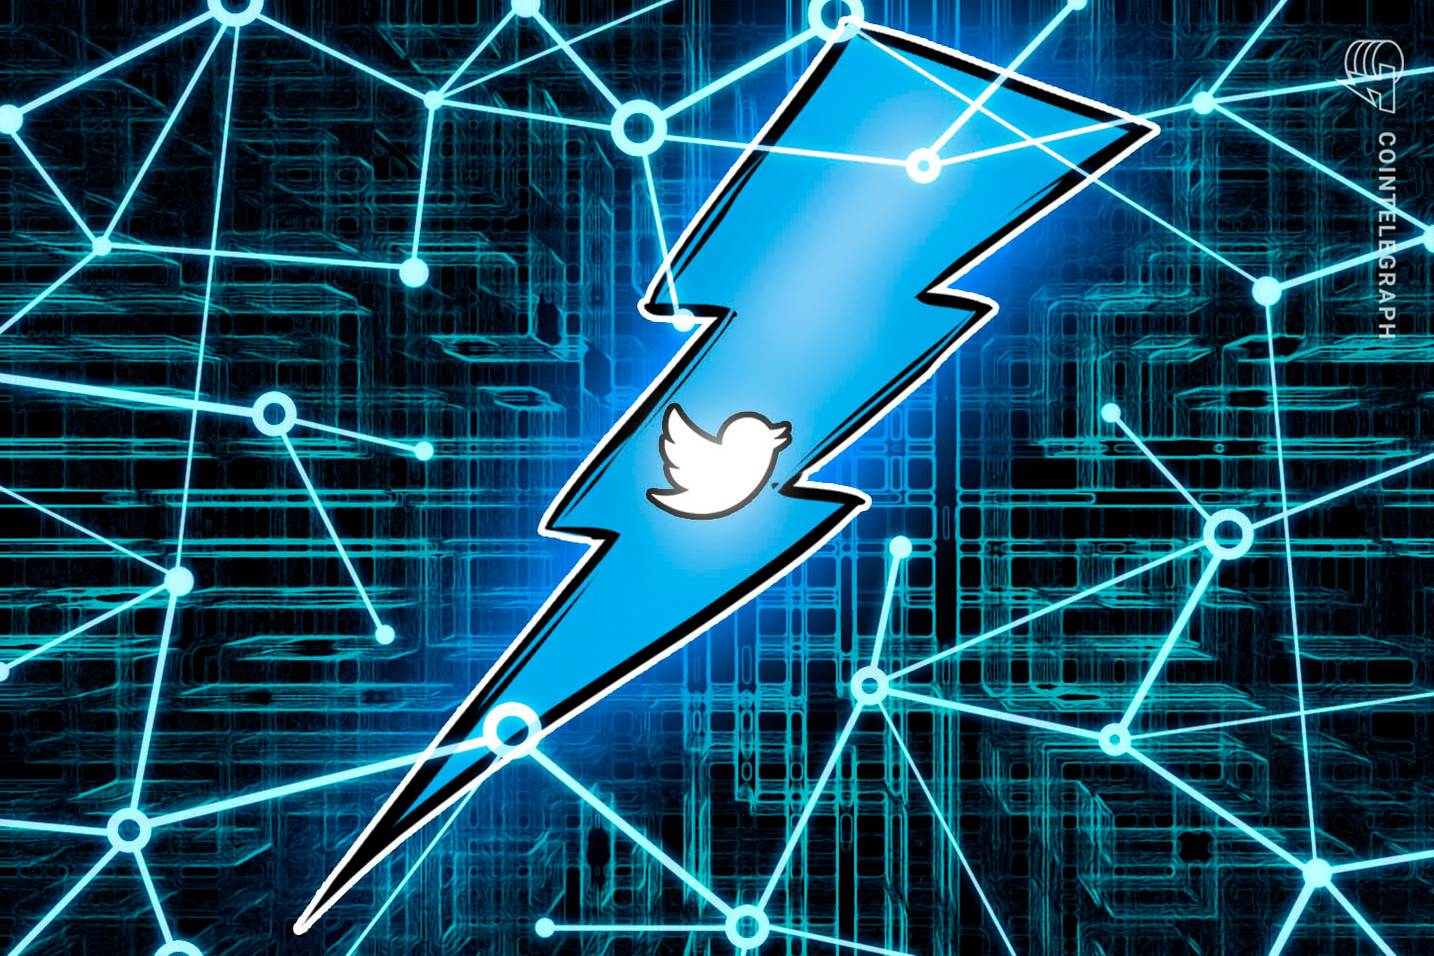 Bitcoin Community Celebrates as Twitter CEO Joins Lightning Network Relay